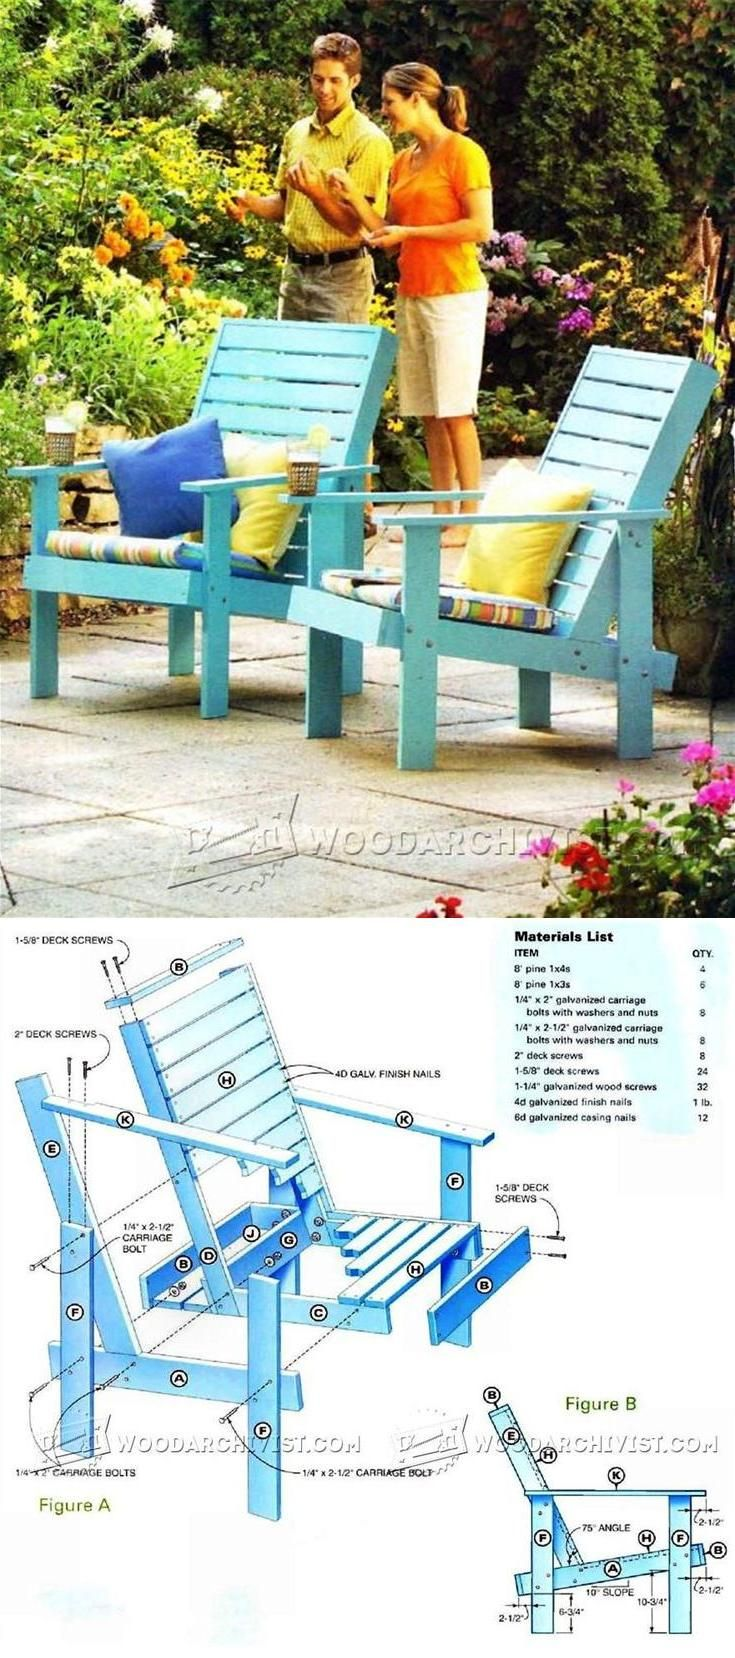 Outdoor Lounge Chair Plans - Outdoor Furniture Plans and Projects   WoodArchivist.com